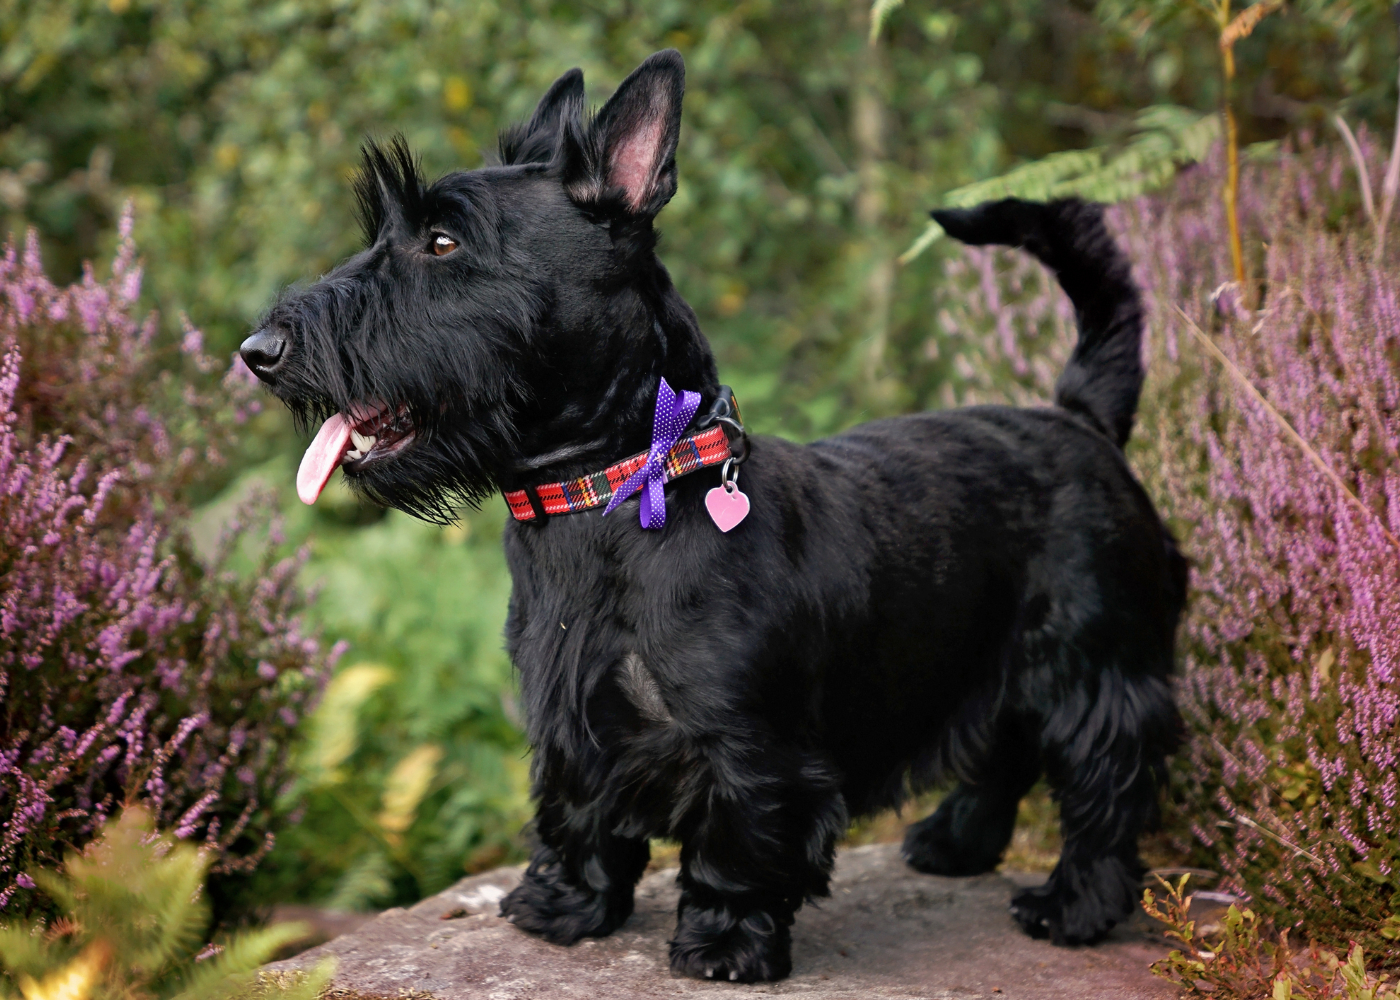 cão scottish terrier na floresta